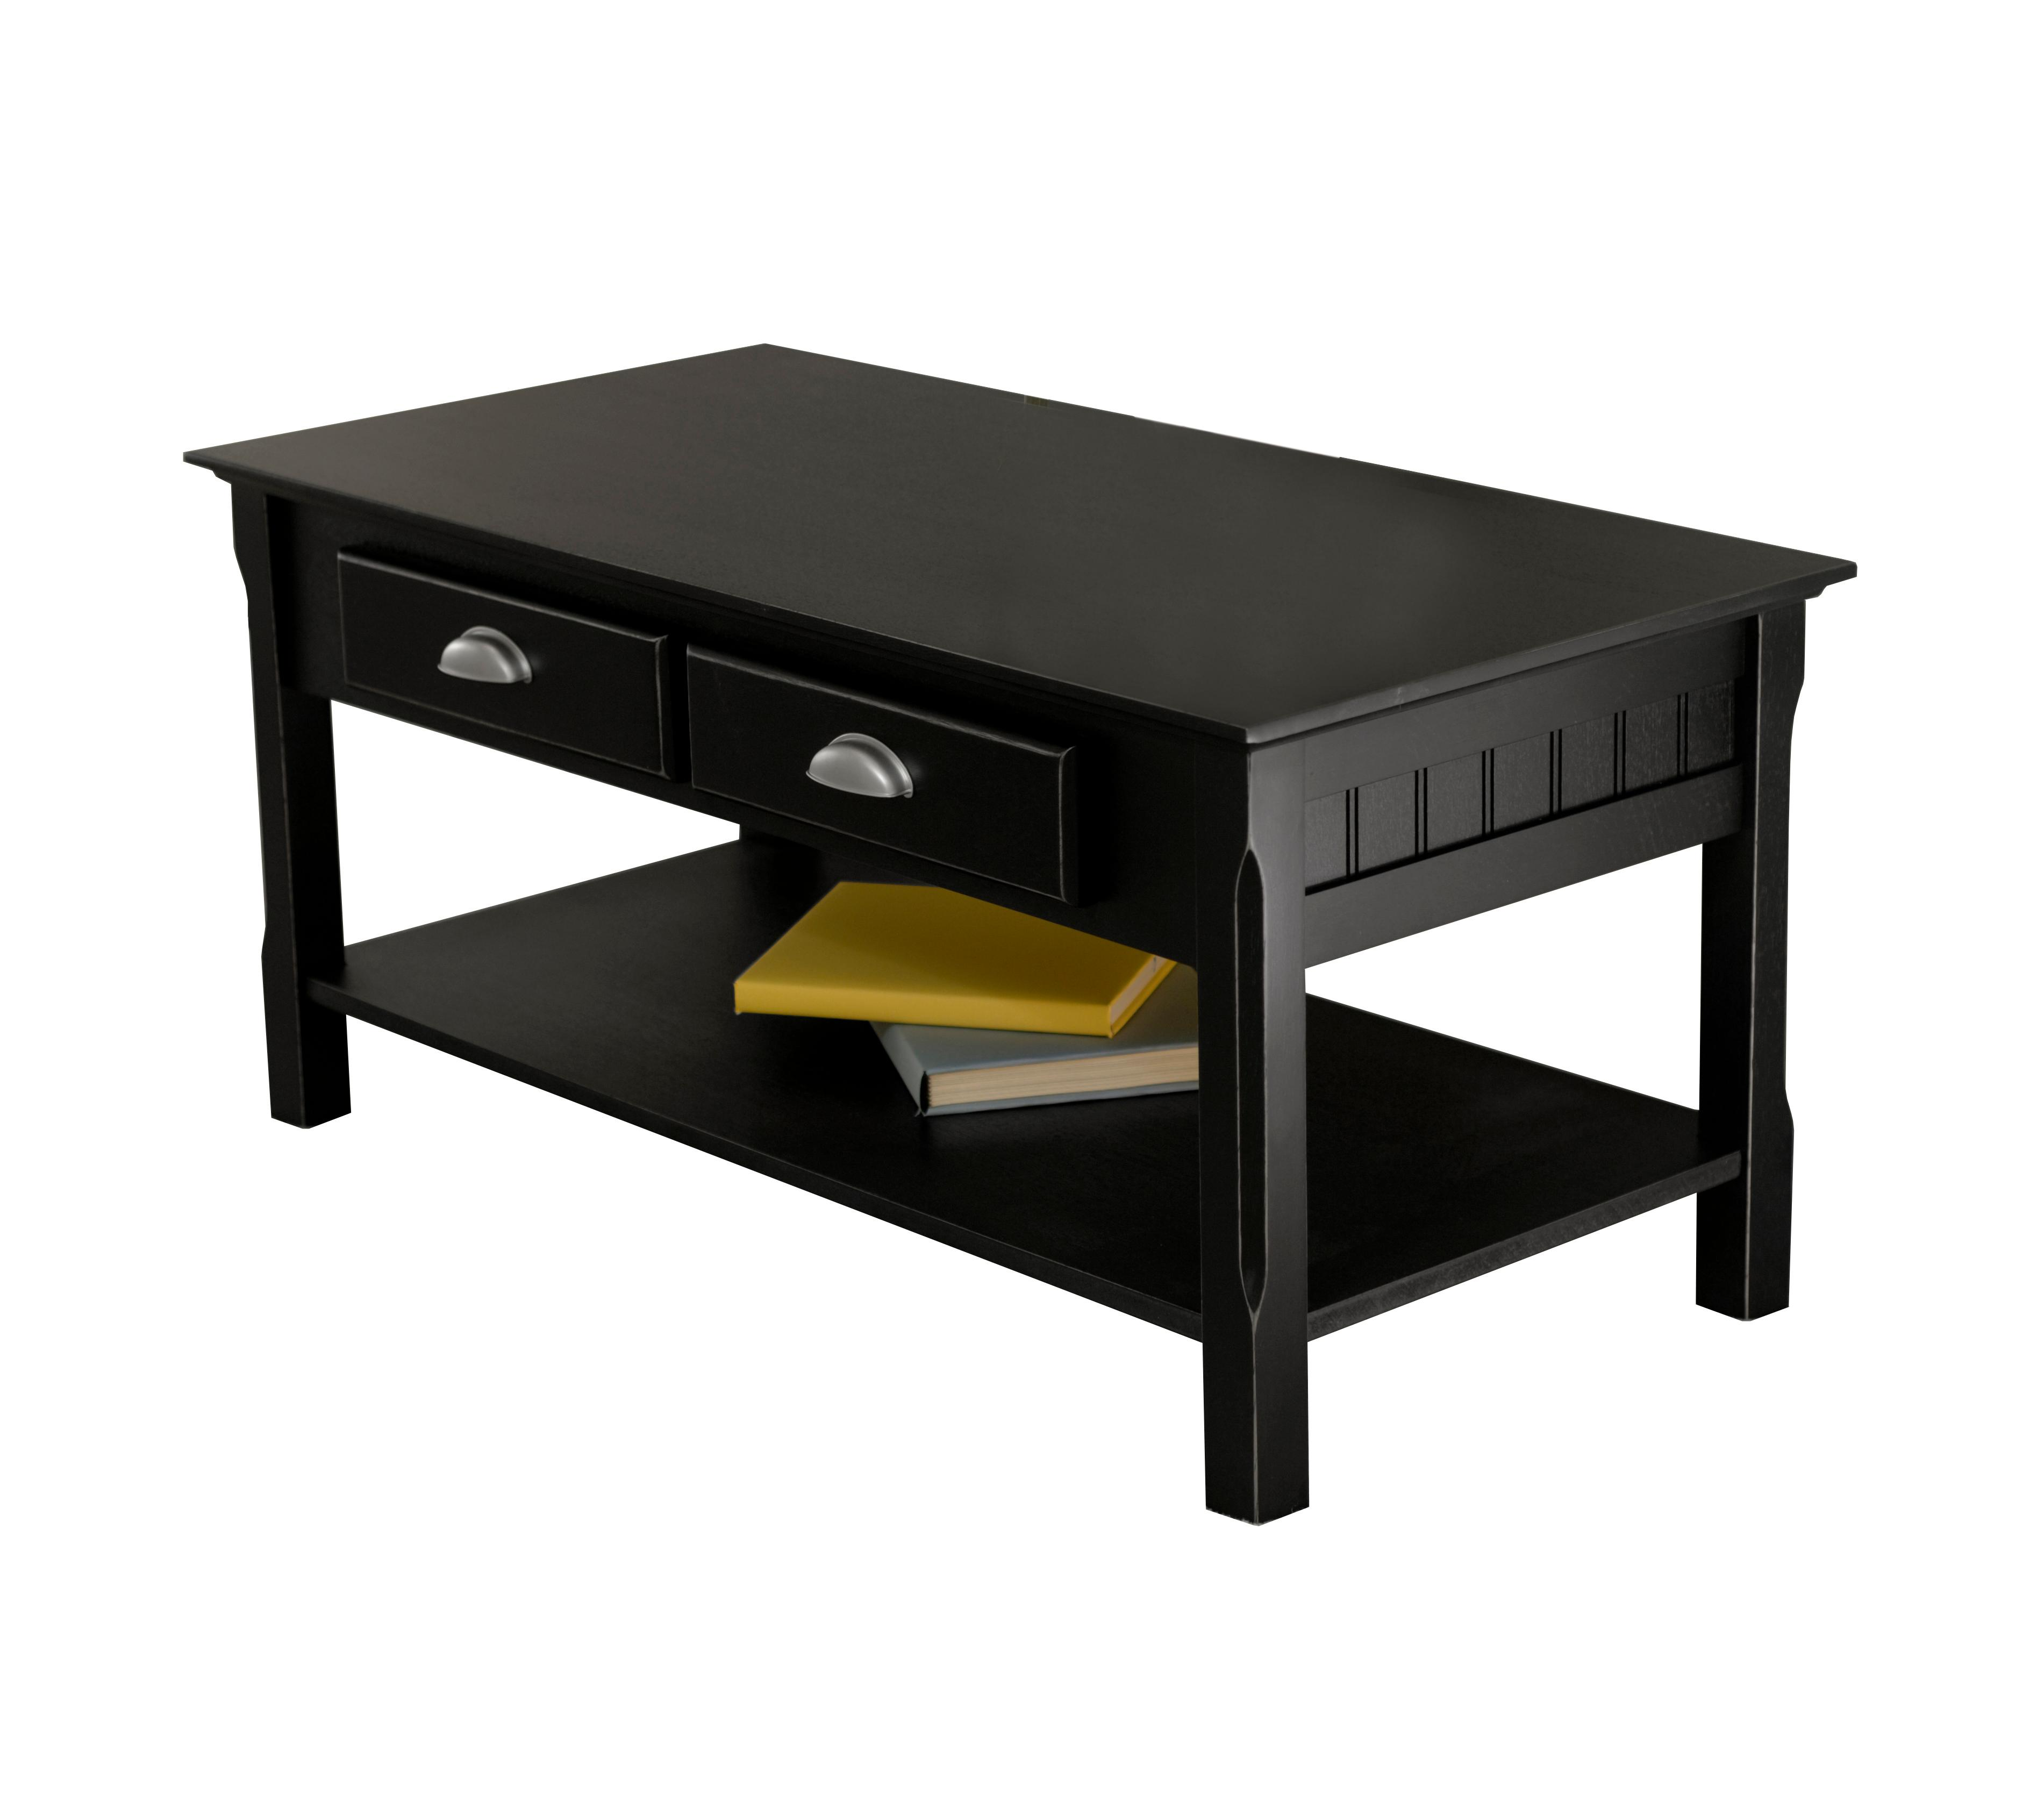 Amazon.com: Winsome Wood Black Coffee Table: Kitchen & Dining